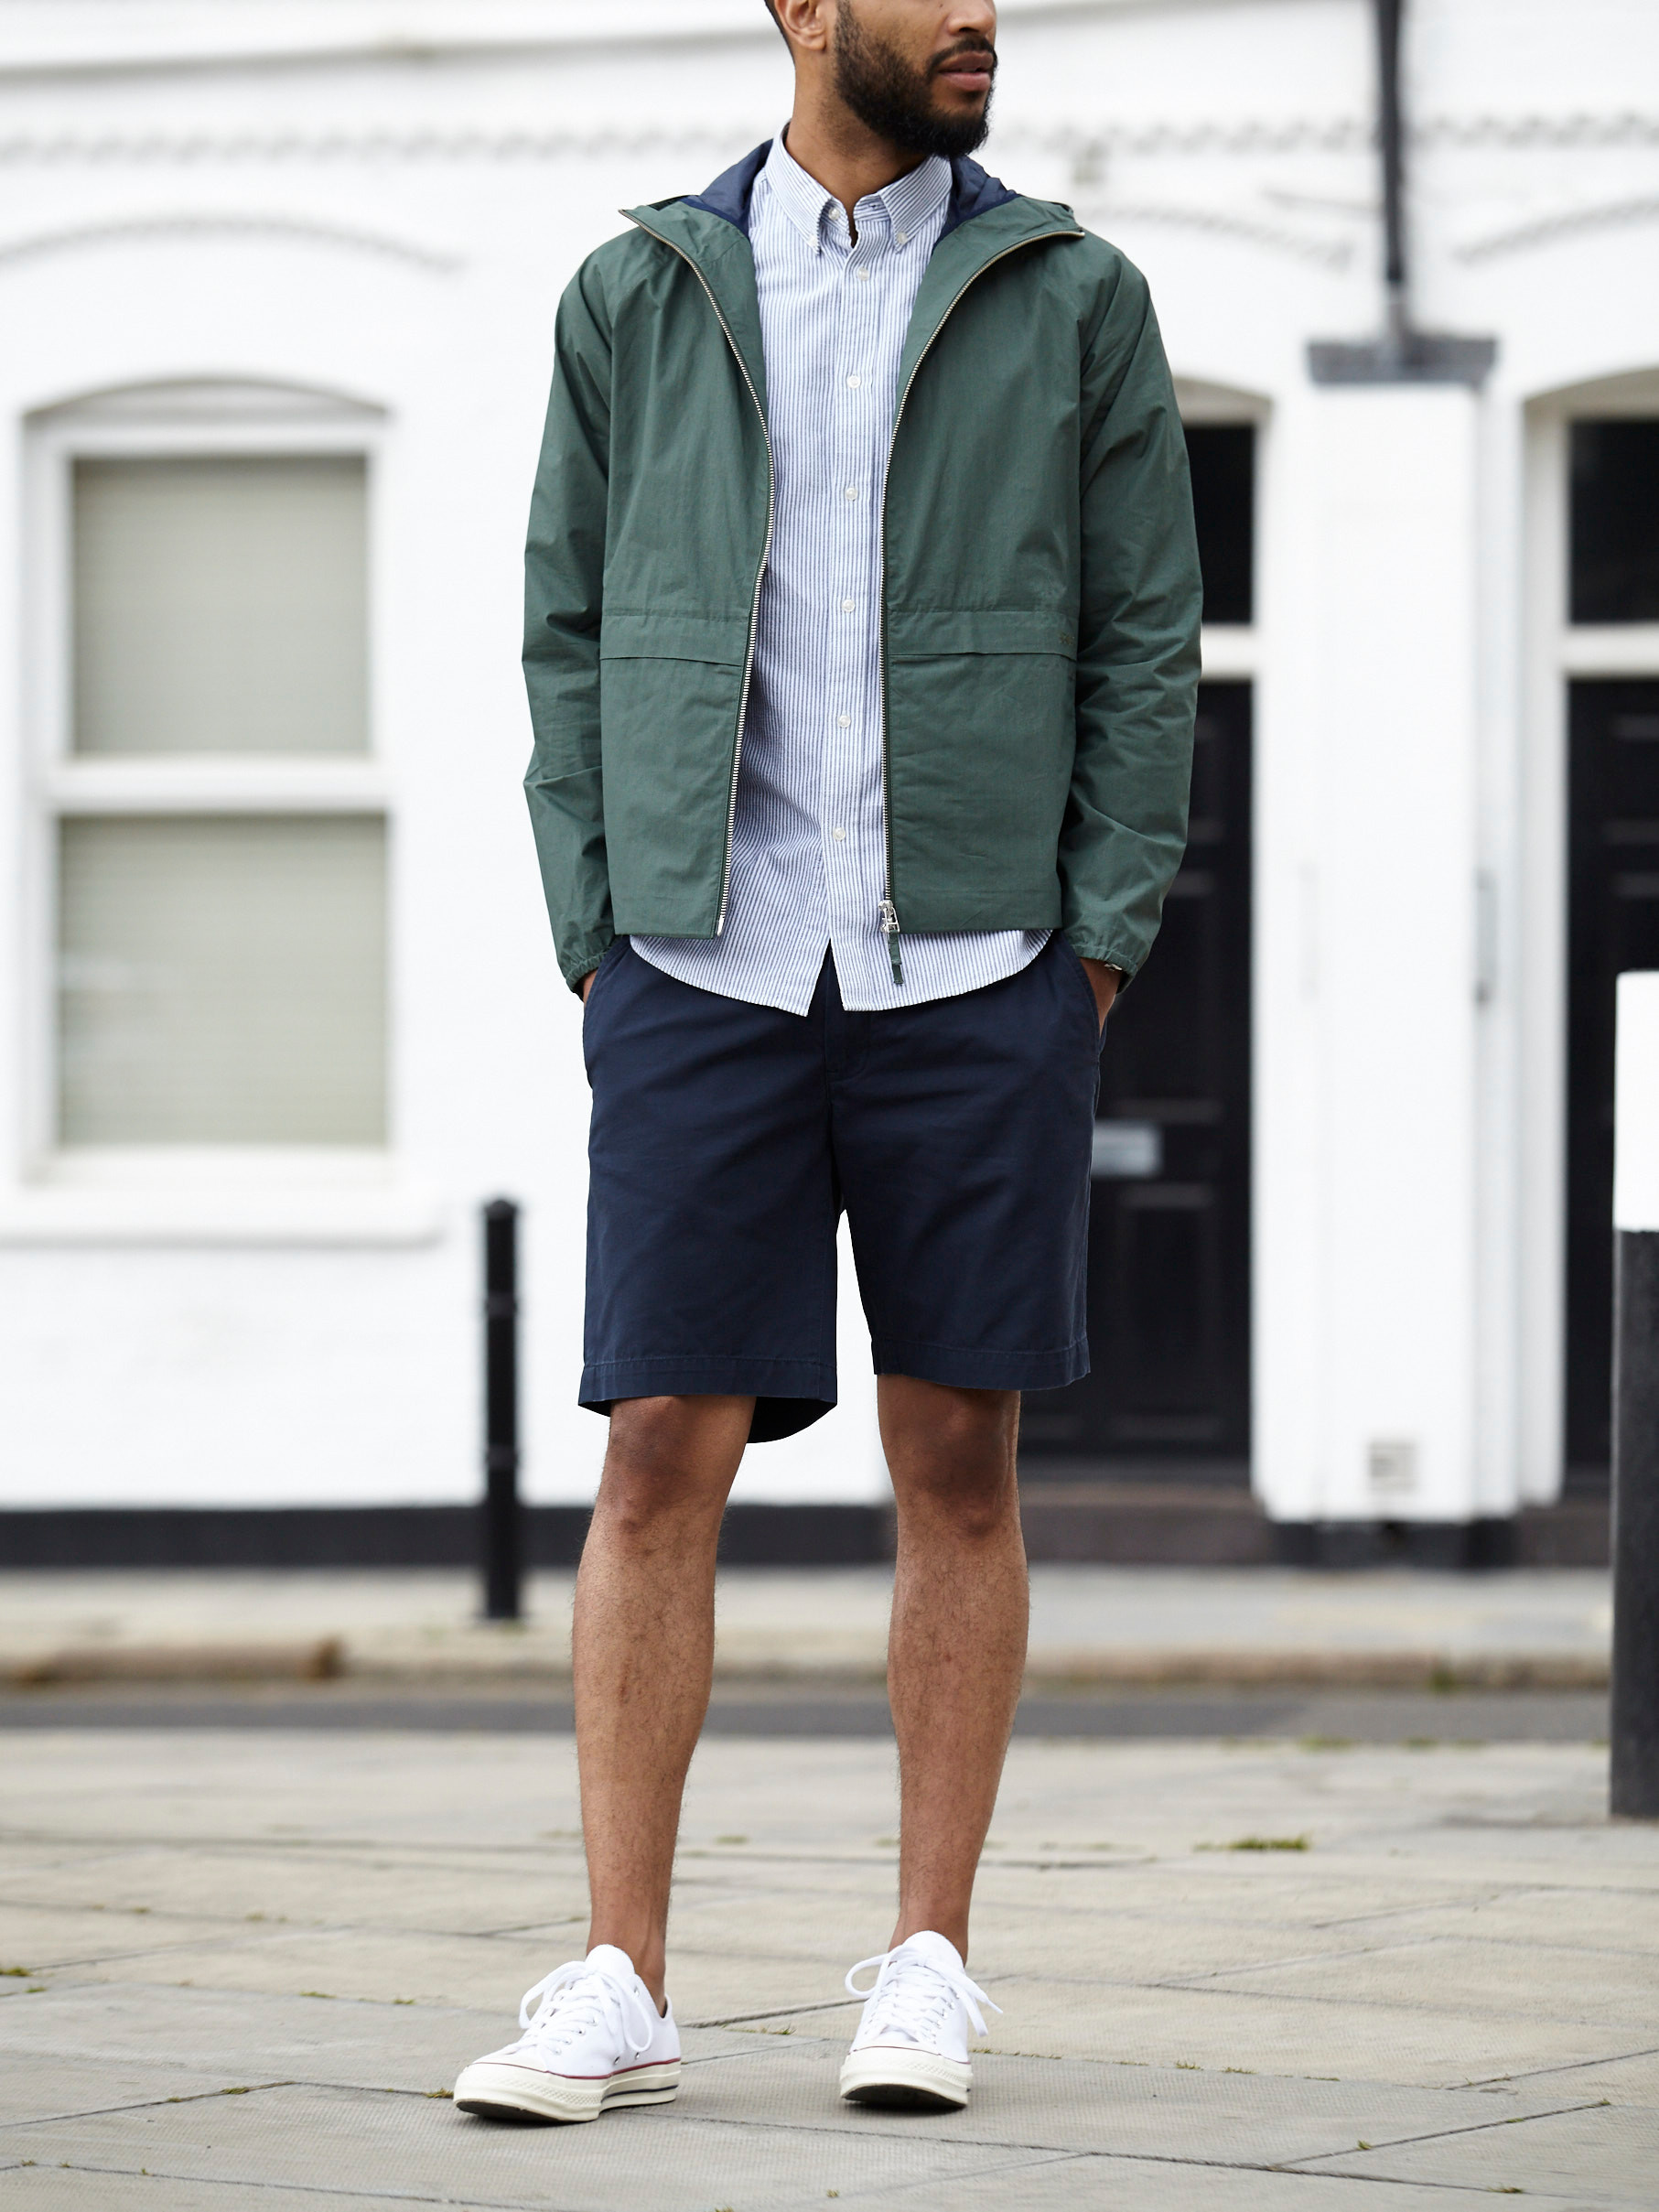 Men's outfit idea for 2021 with waterproof jacket / windbreaker, striped casual shirt, navy shorts, converse. Suitable for spring and summer.